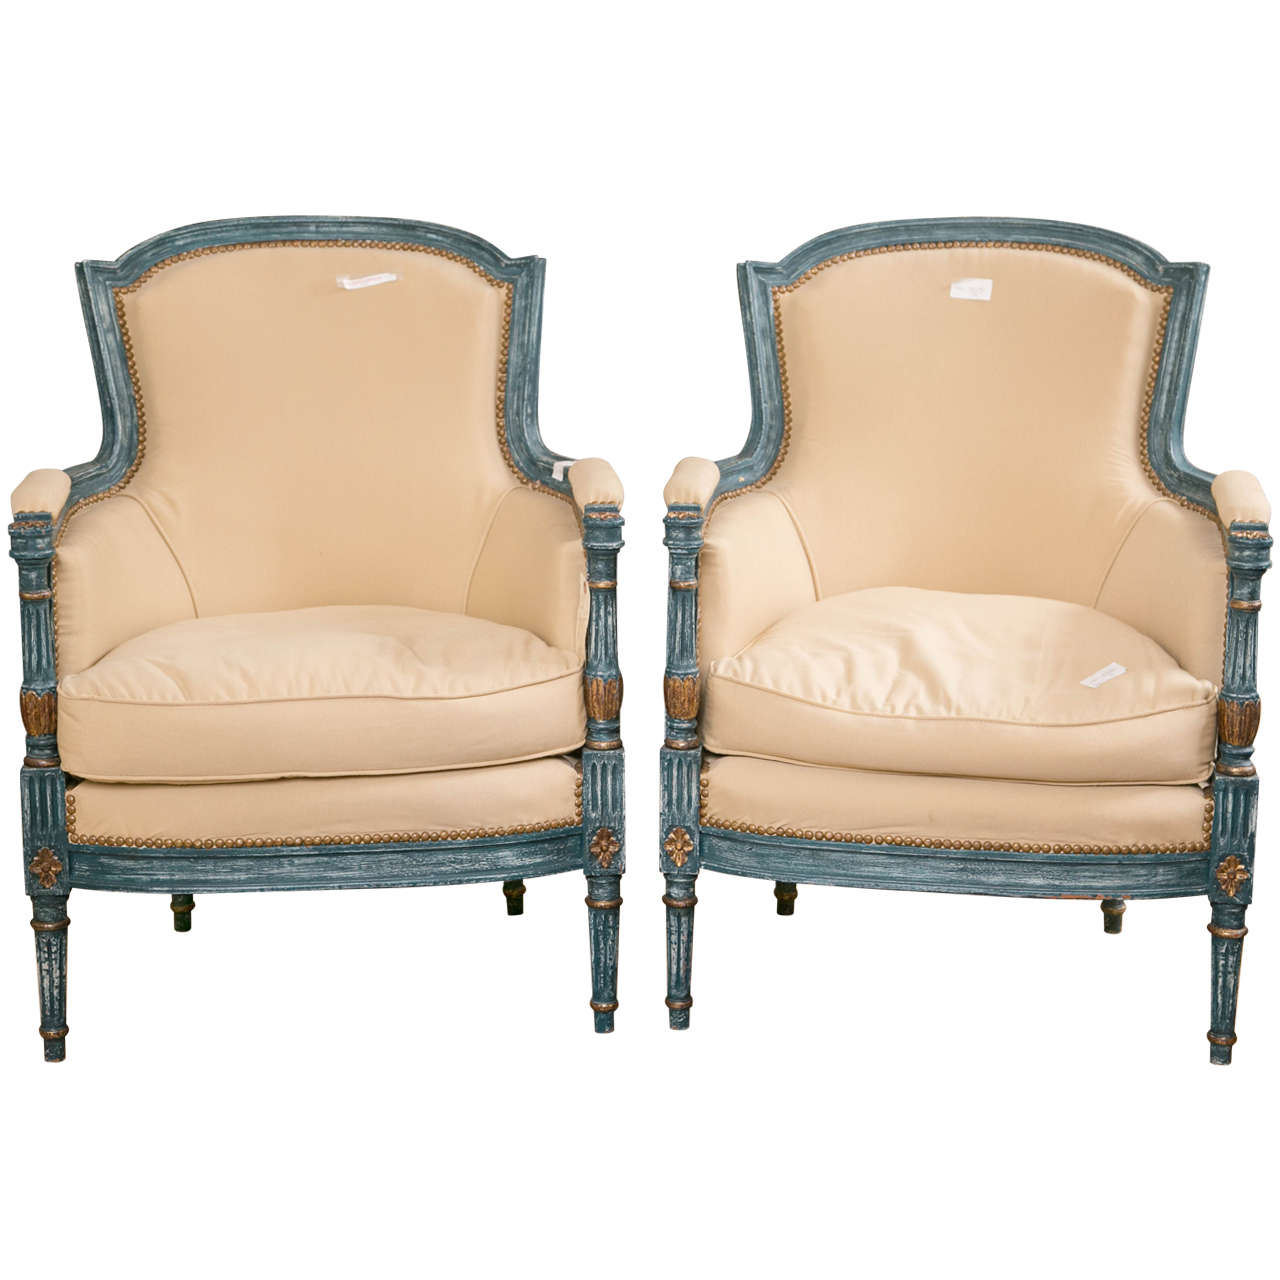 Pair of Fine Quality Louis XVI Style Bergere Chairs by Maison Jansen